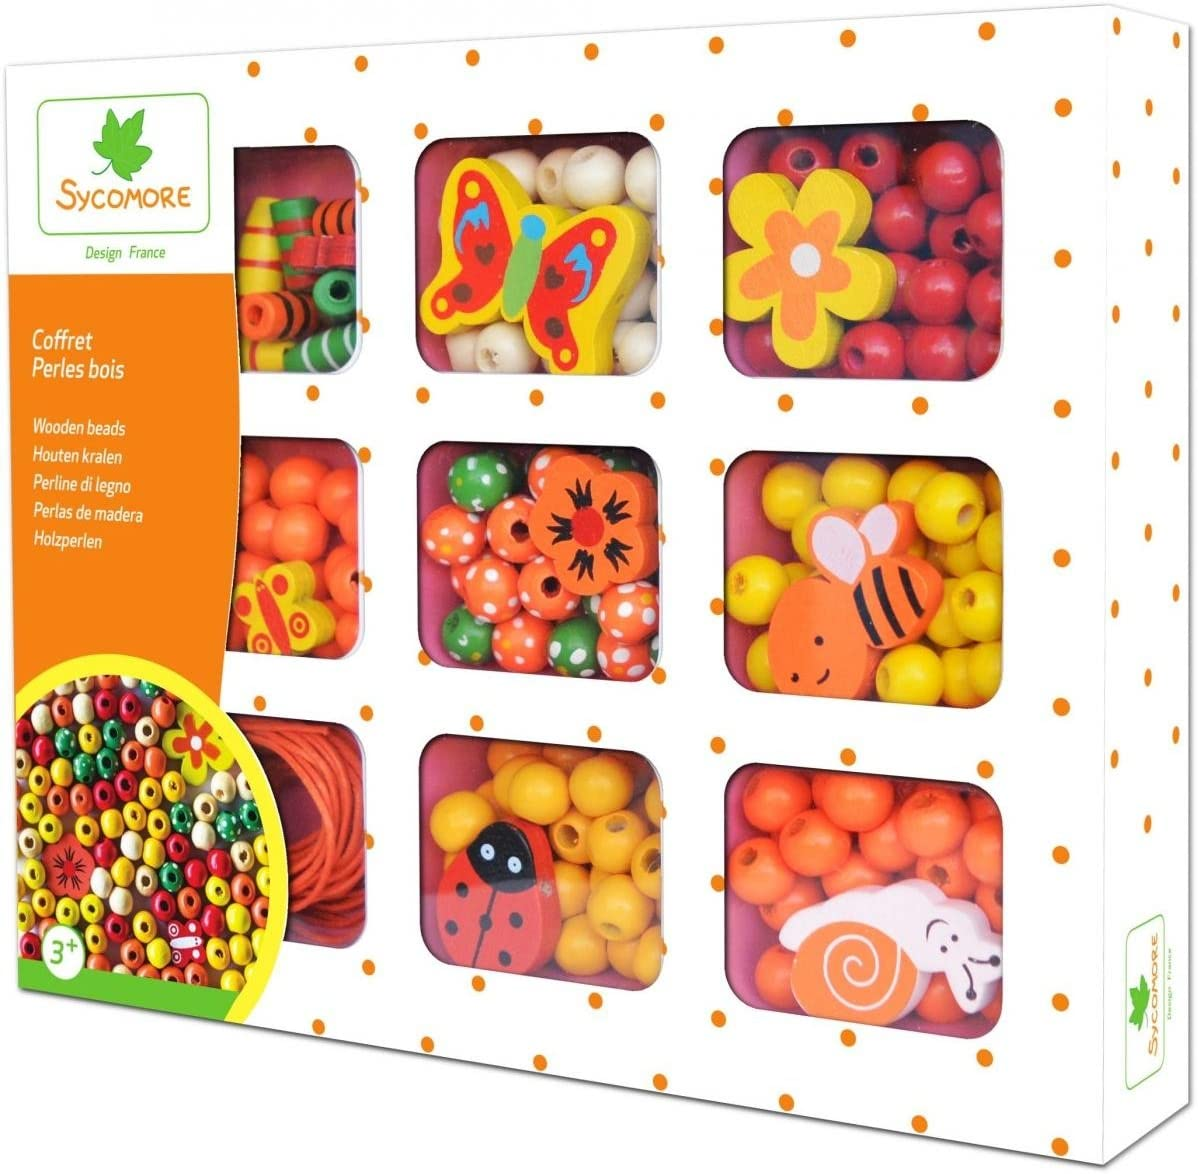 Multicolors Sycomore CRE33131/_xx Crafts for Children-Wooden Beads for Necklaces and Bracelets-Orange Case-from Age 3 years-Sycomore-CRE33131